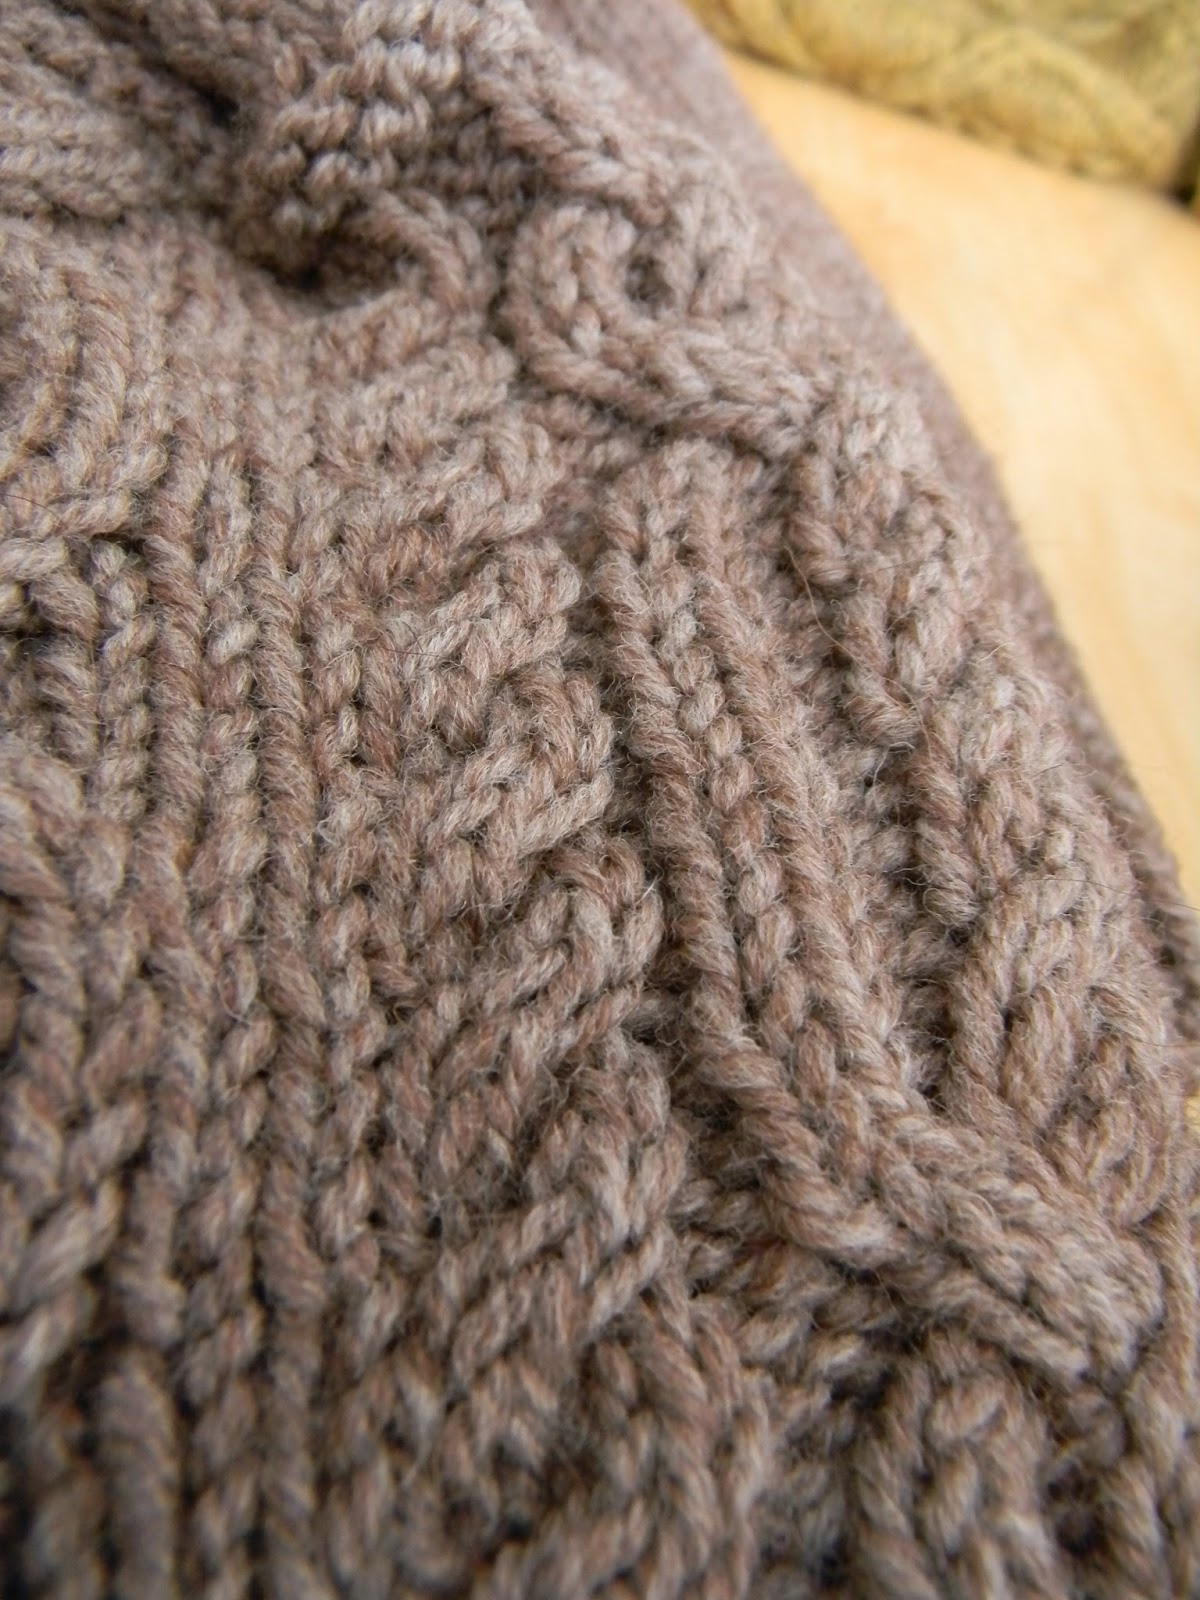 Knitting Cables Tips : Figknits cable knitting tips part one